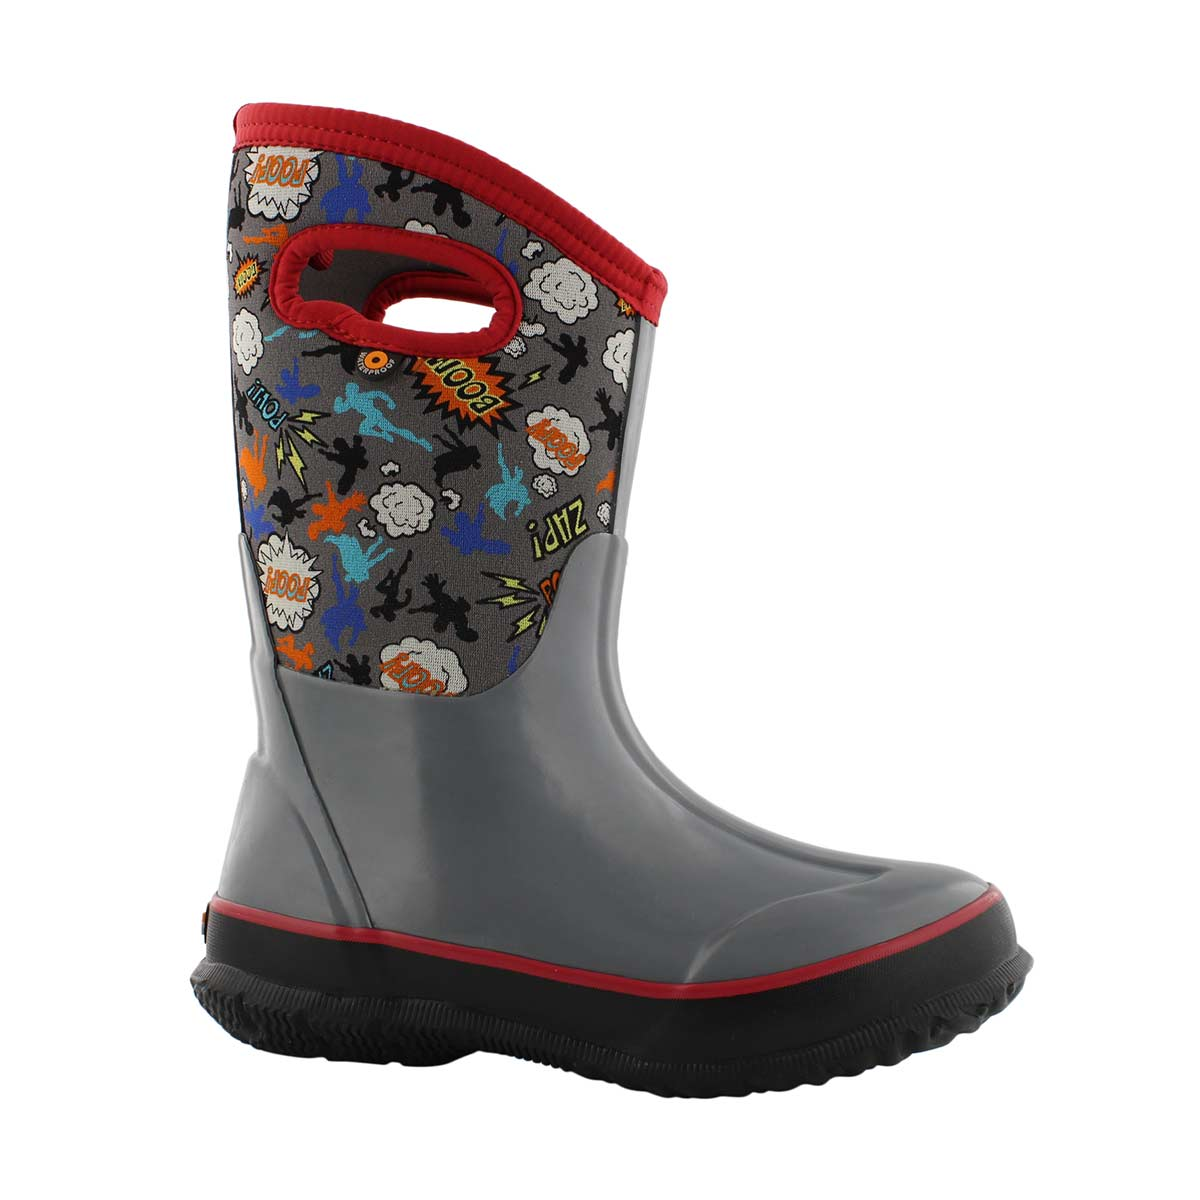 Bys Classic Super Hero gry mlt wtpf boot